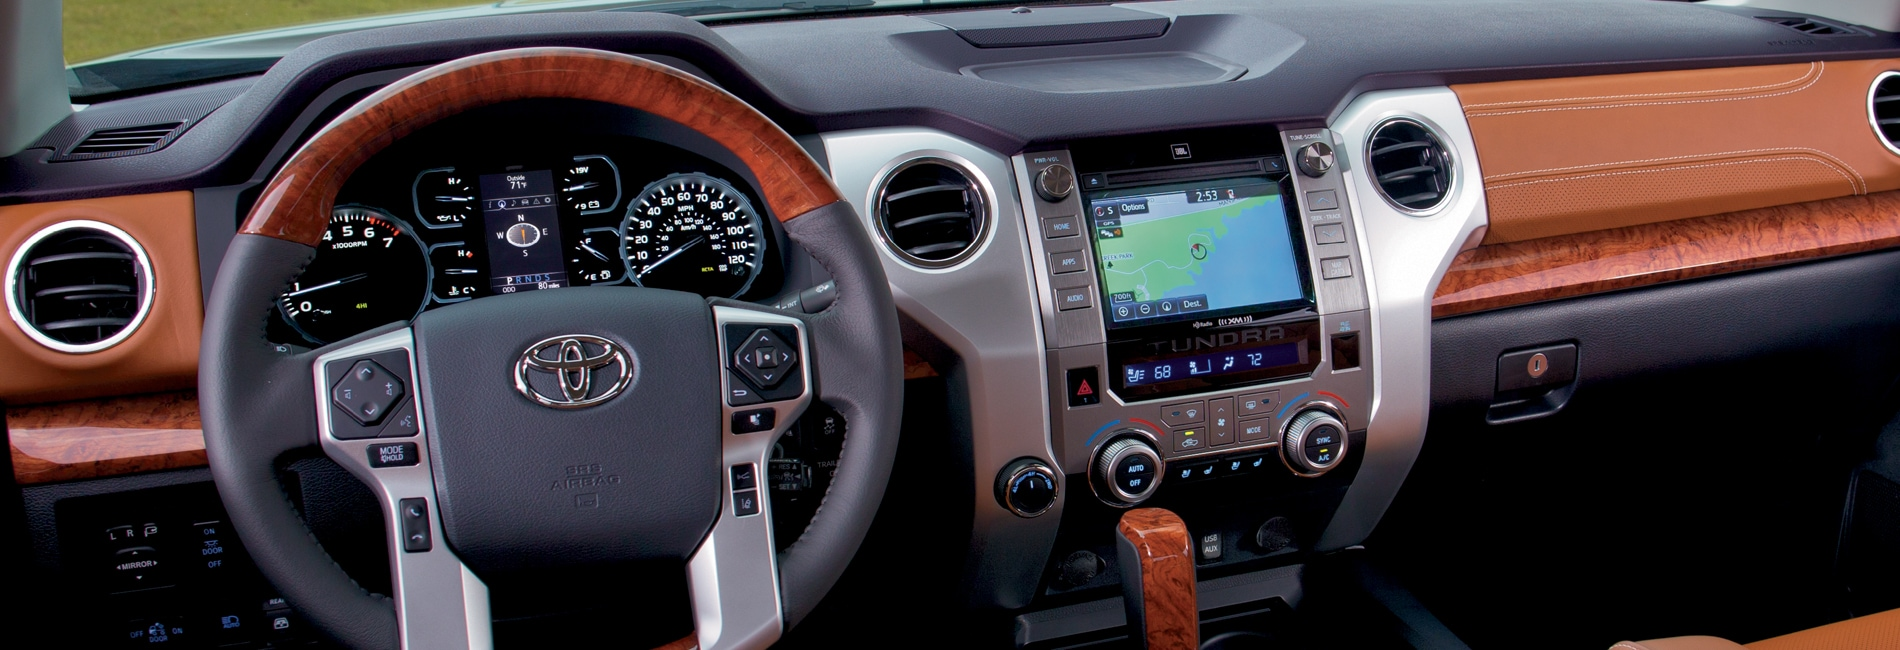 Toyota Tundra Interior Vehicle Features